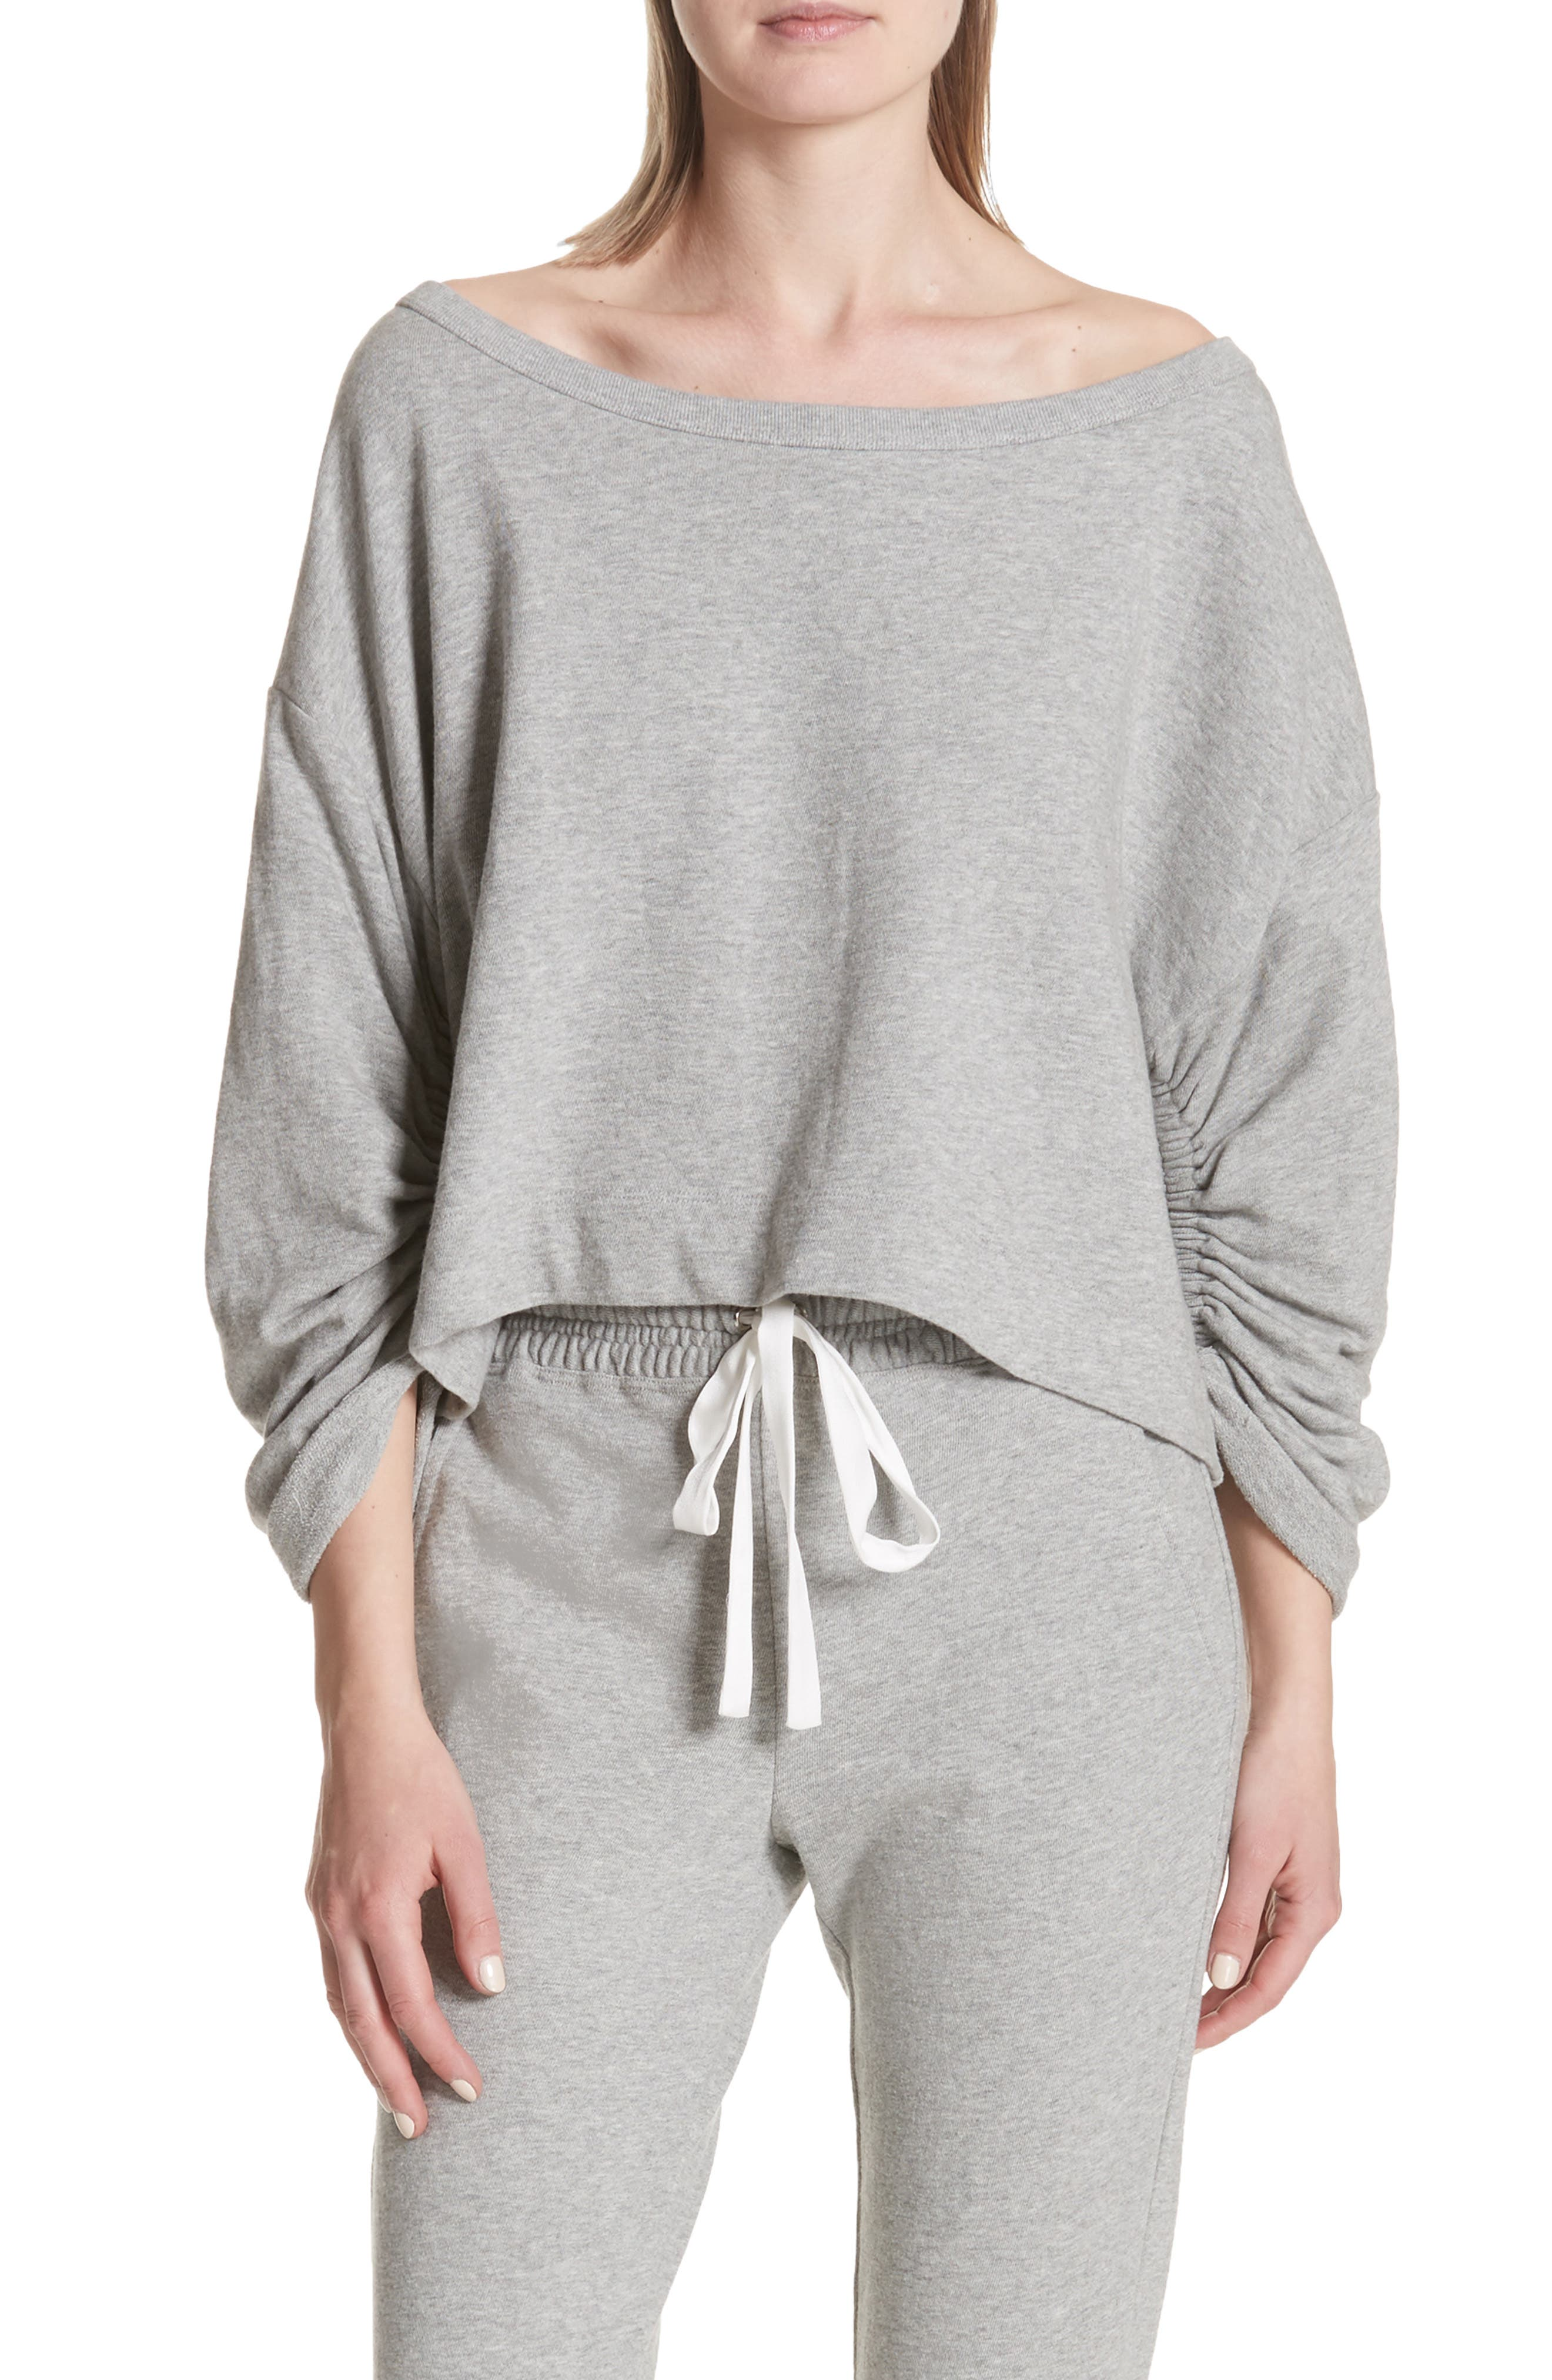 Ember Ruched Sleeve Sweatshirt,                             Main thumbnail 1, color,                             Heather Grey